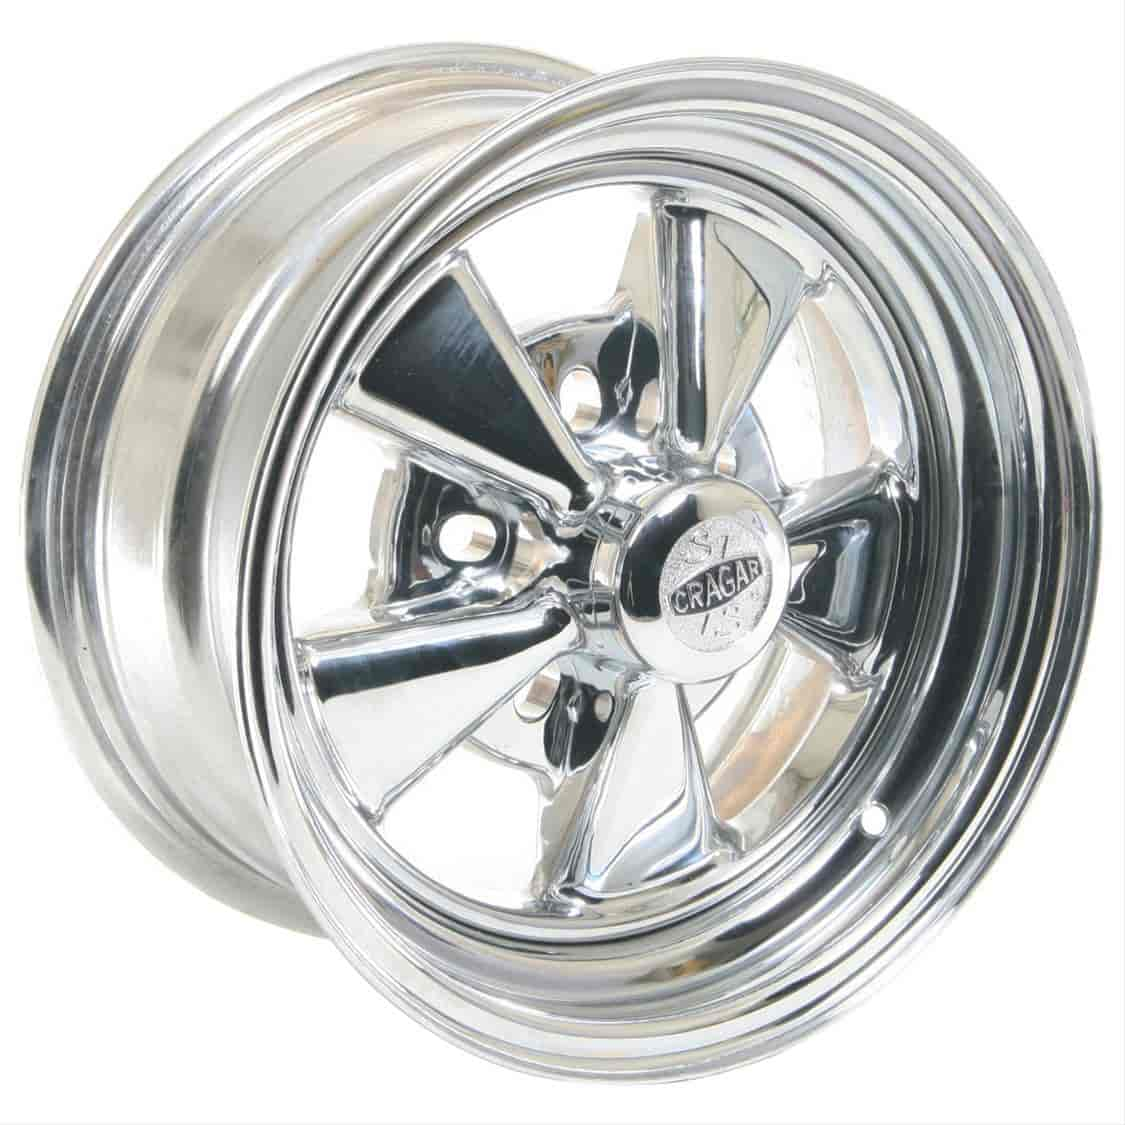 Cragar 61754 - Cragar 08/61 Series S/S Super Sport Wheels